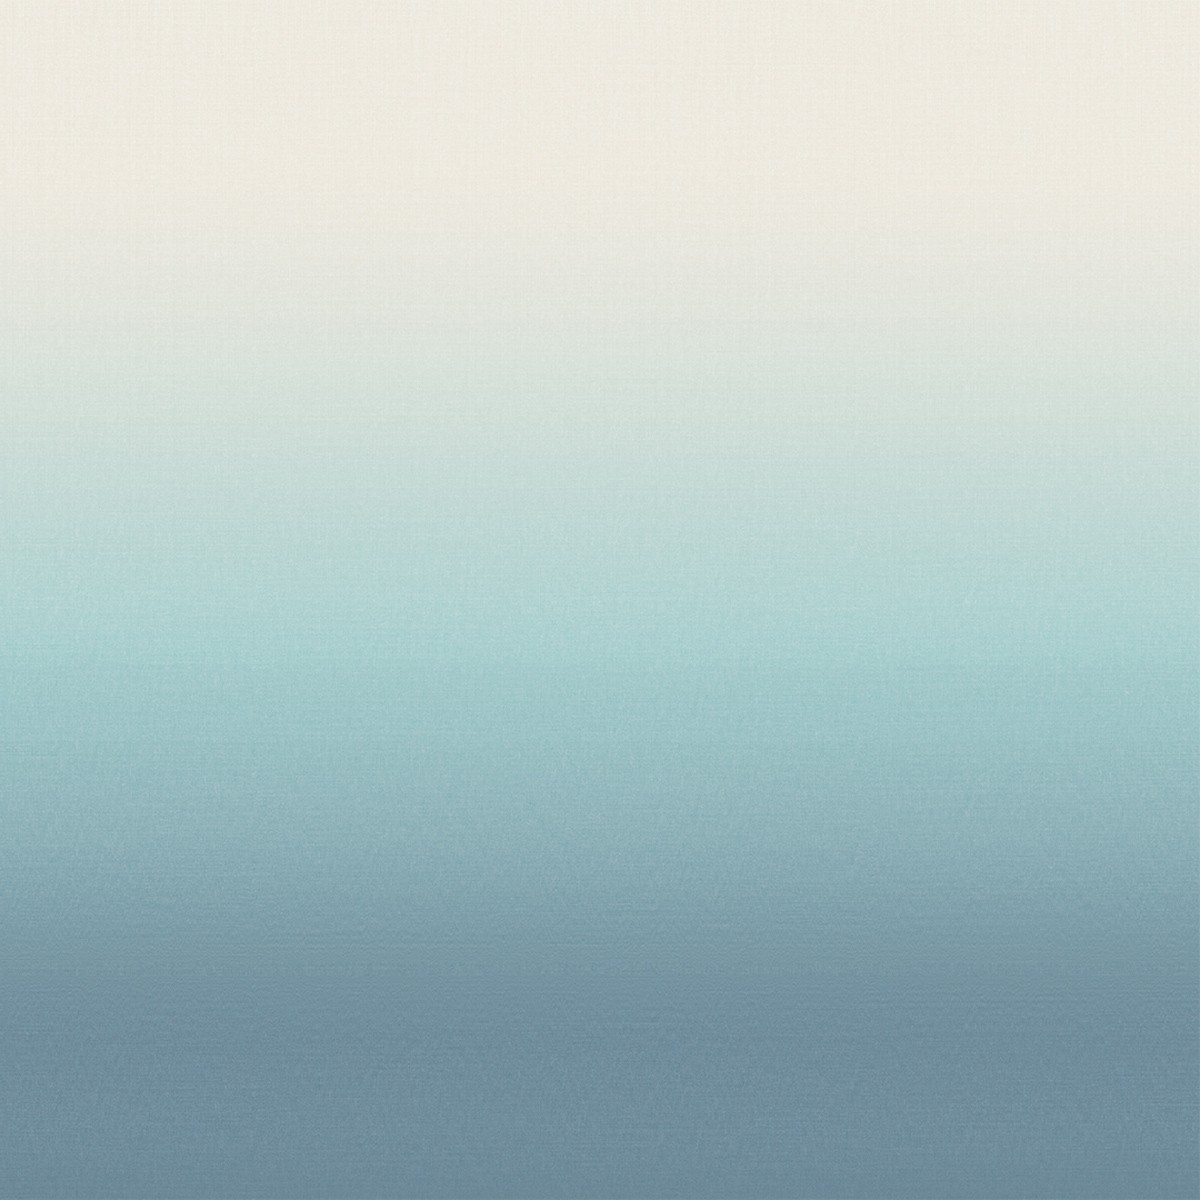 Horizon in the colourway pale blue